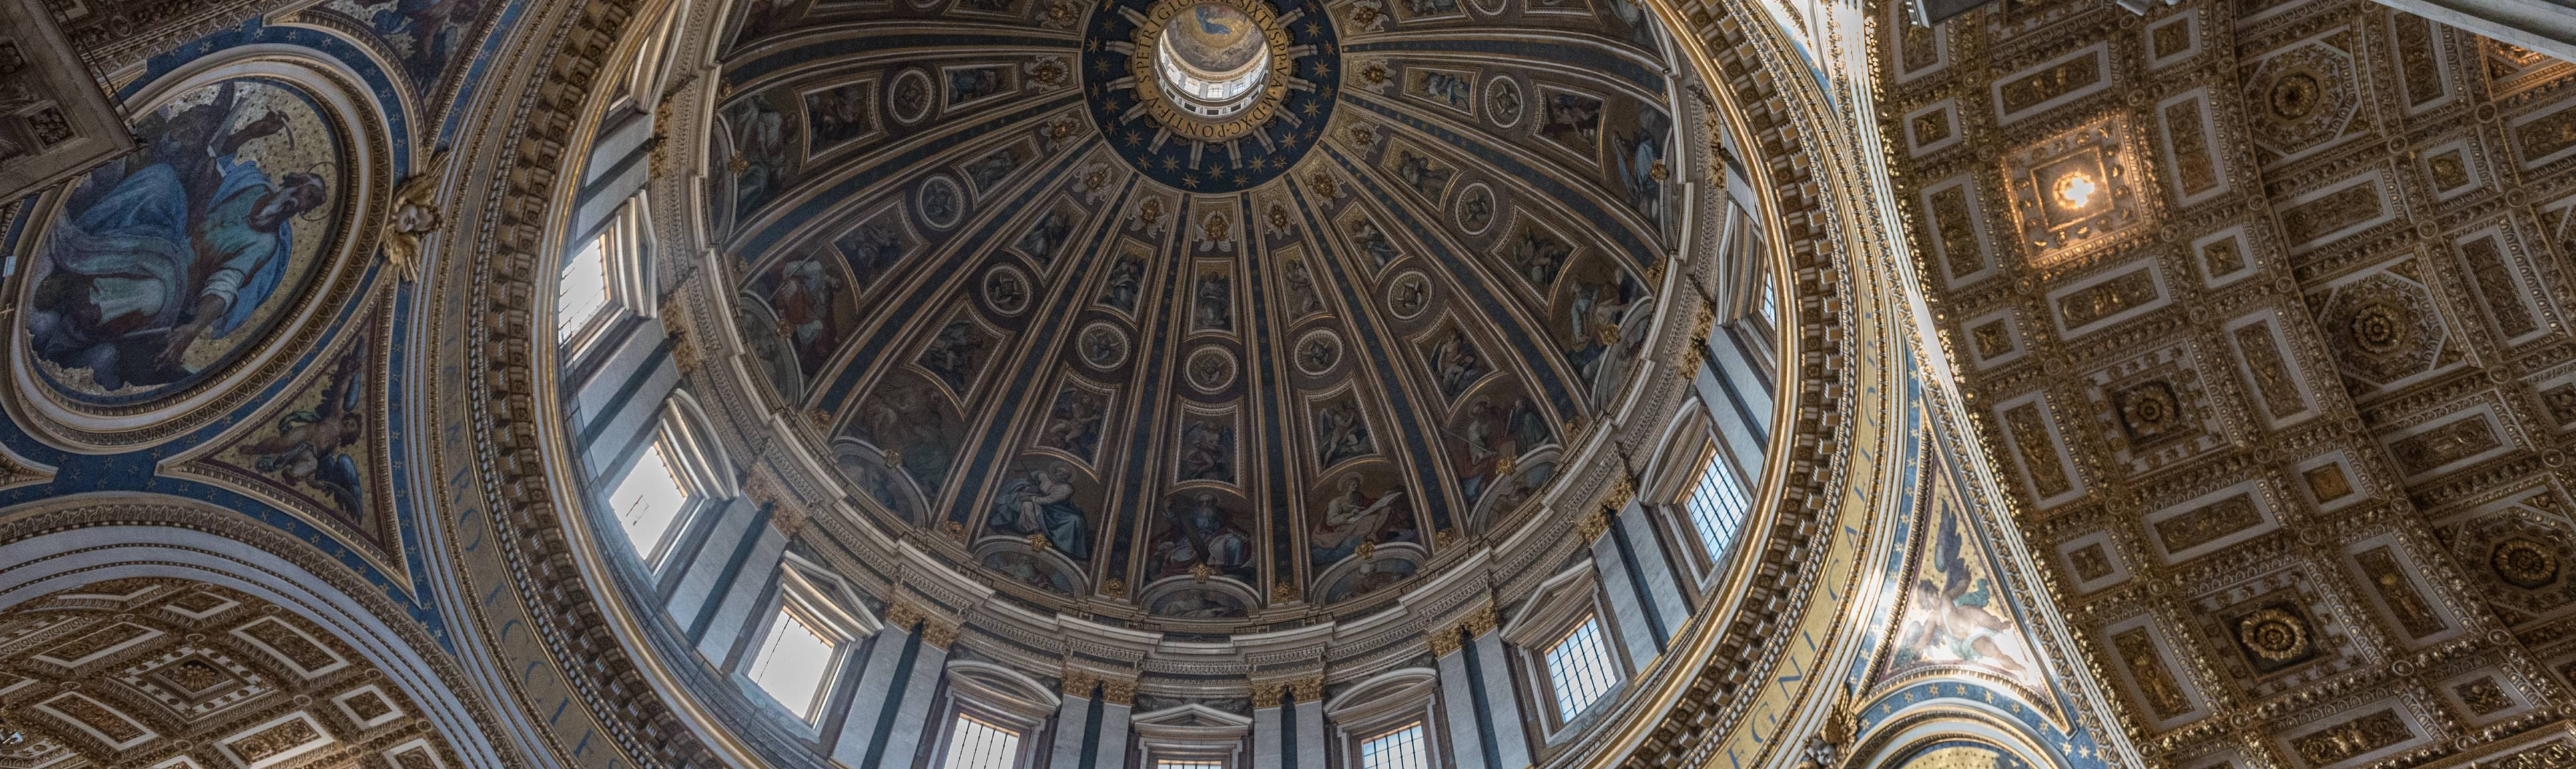 Looking up at the dome in St. Peter's Basilica in Rome